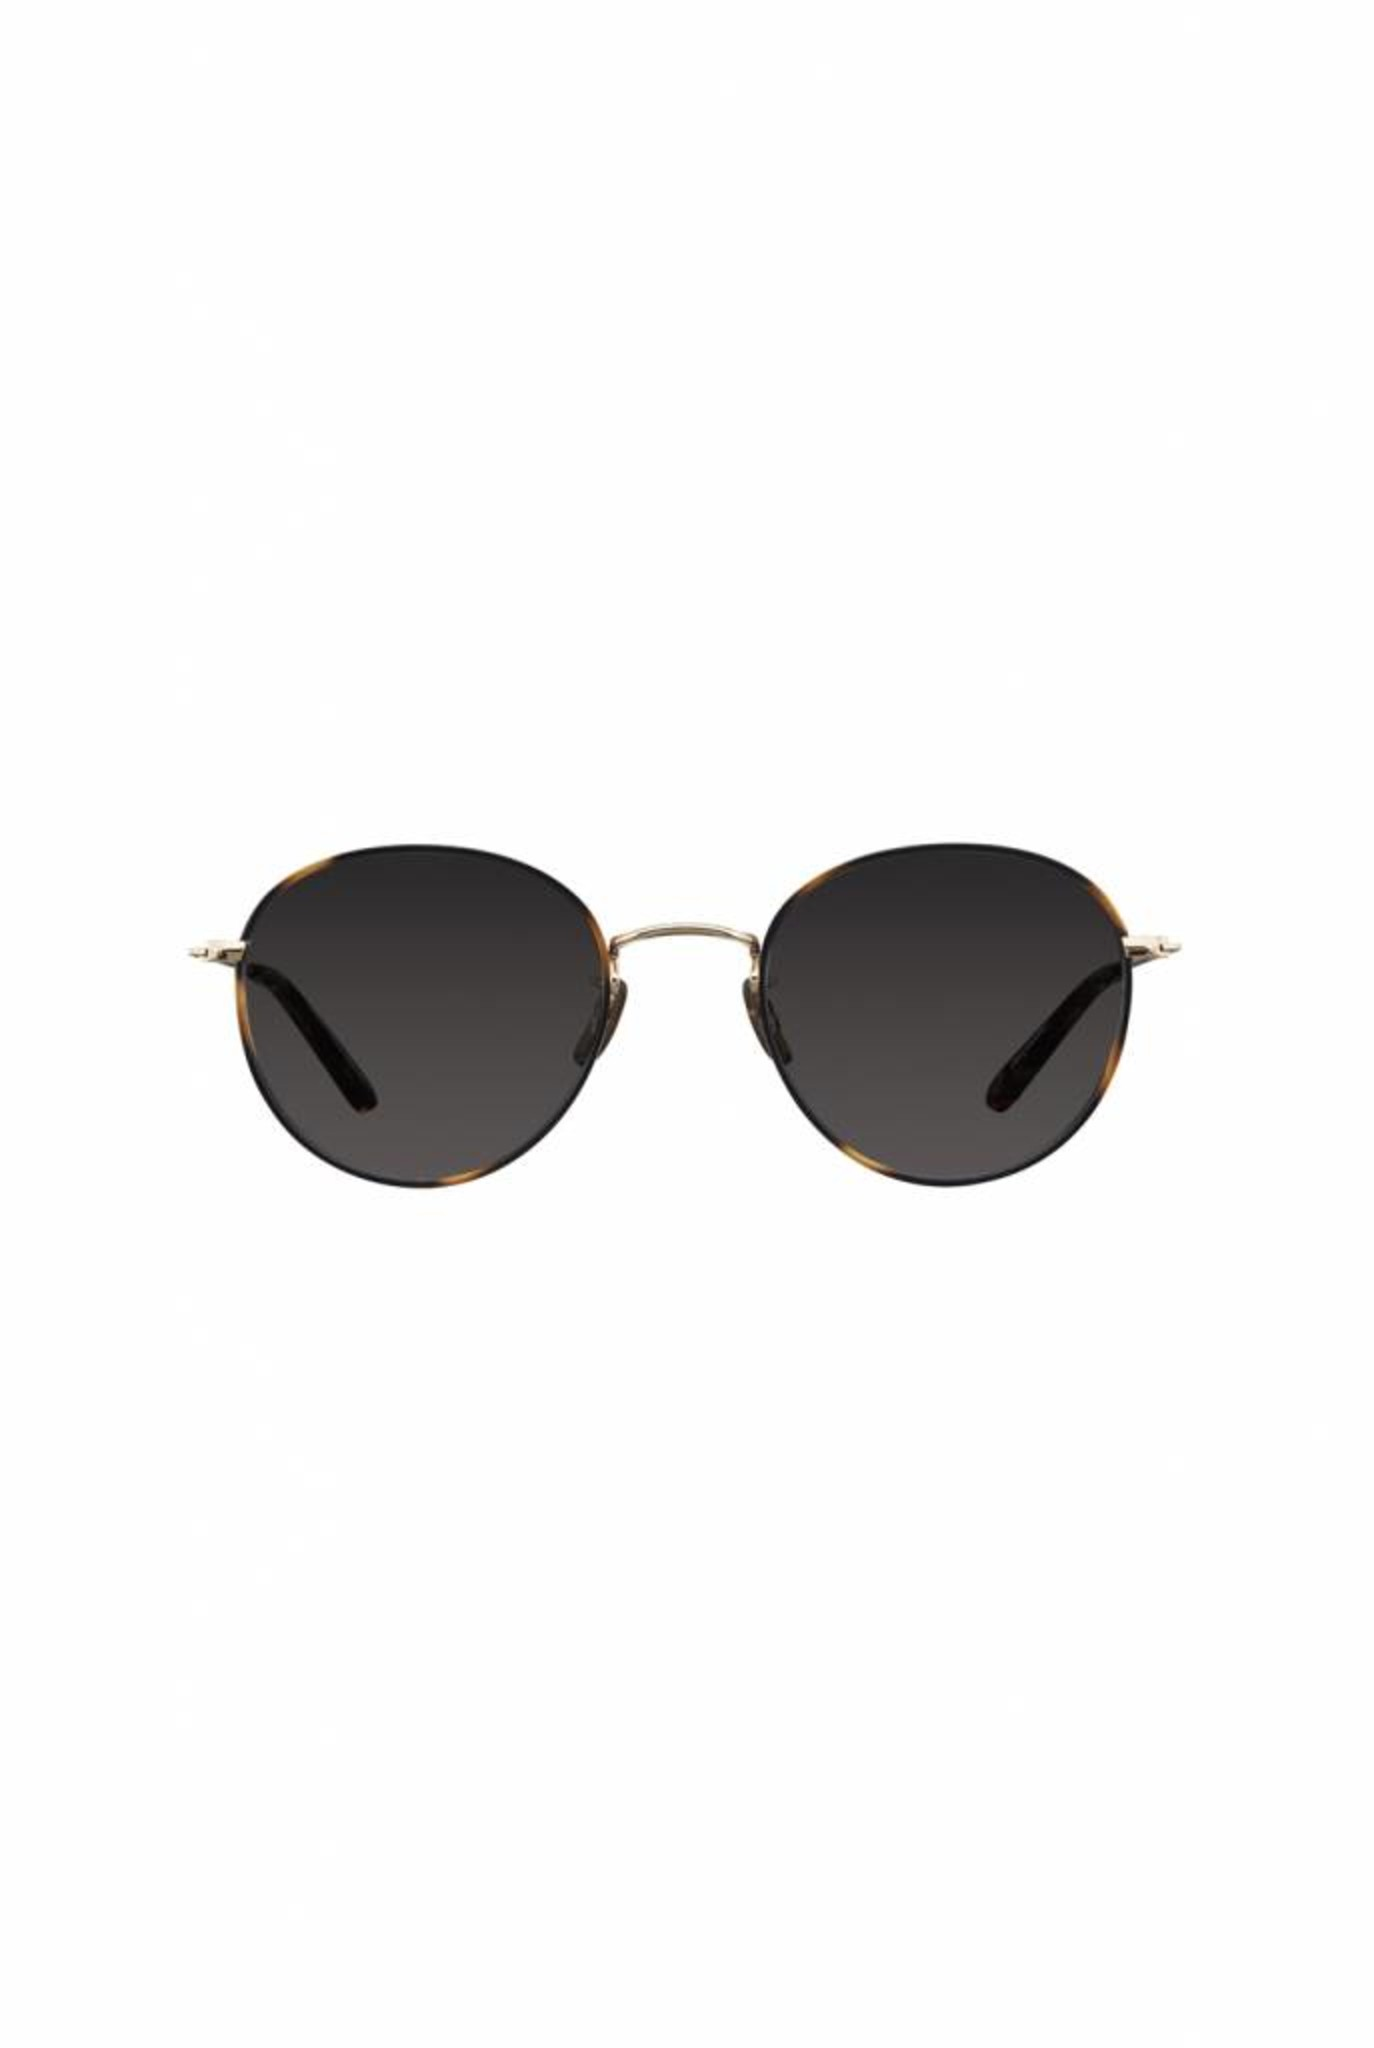 Paloma sunglasses Tiger Eye-Gold/Semi-Flat Matte black Mirror